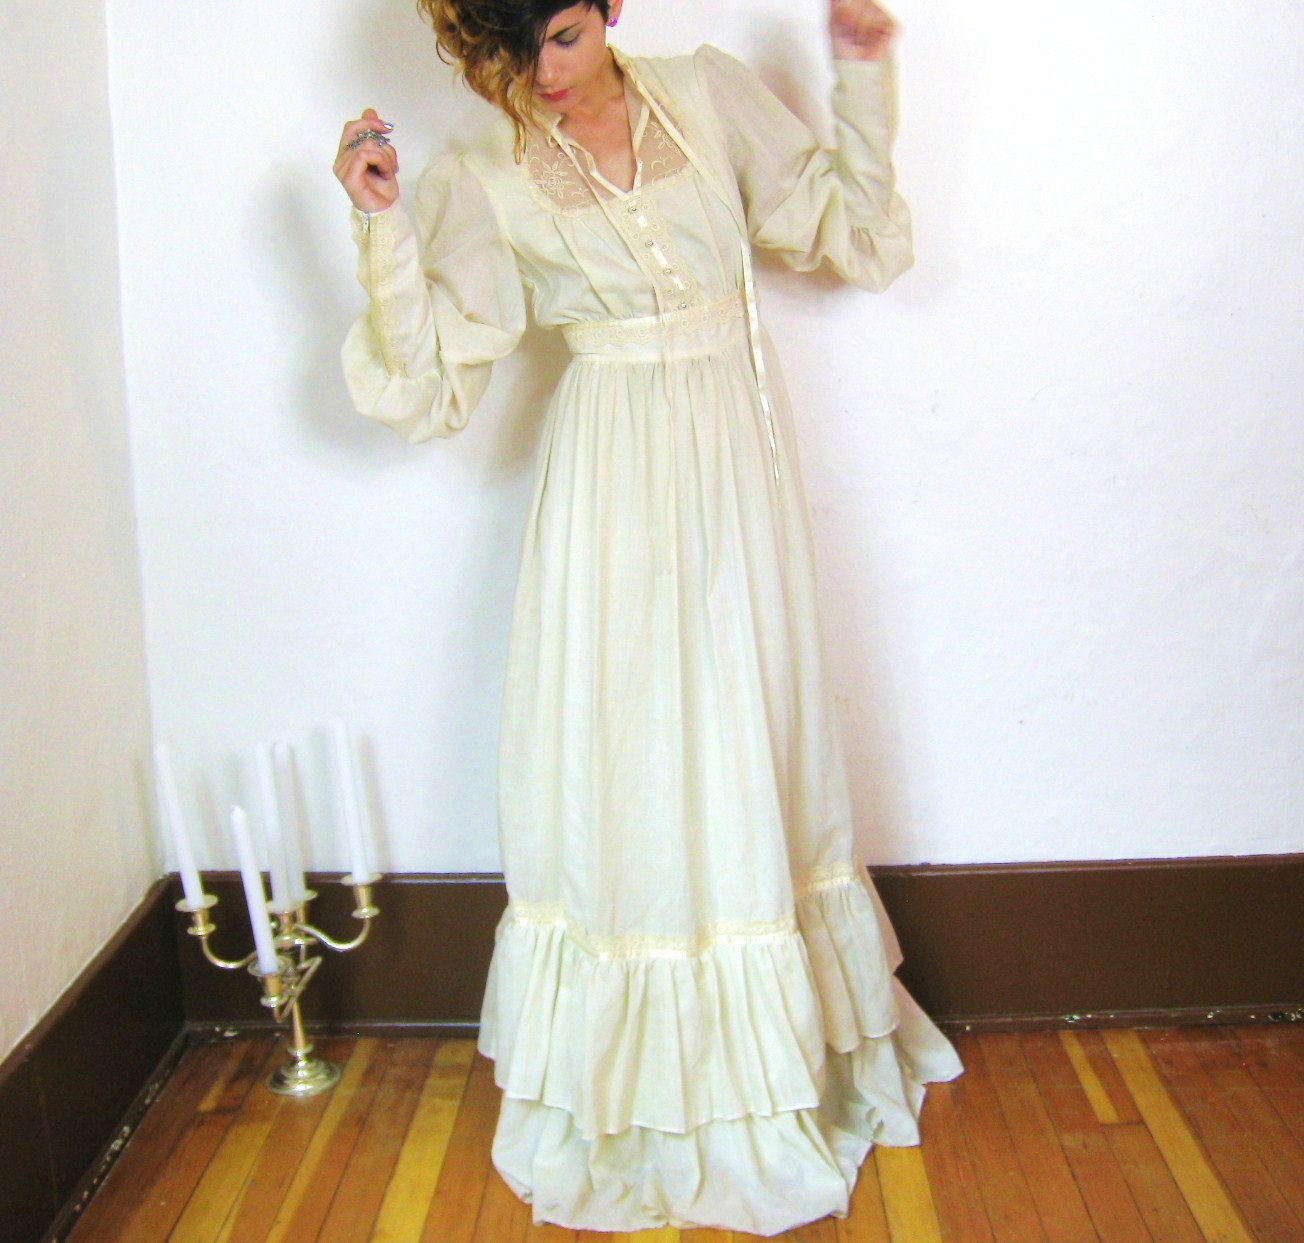 peasant dress peasant style wedding dress Peasant Wedding Dress